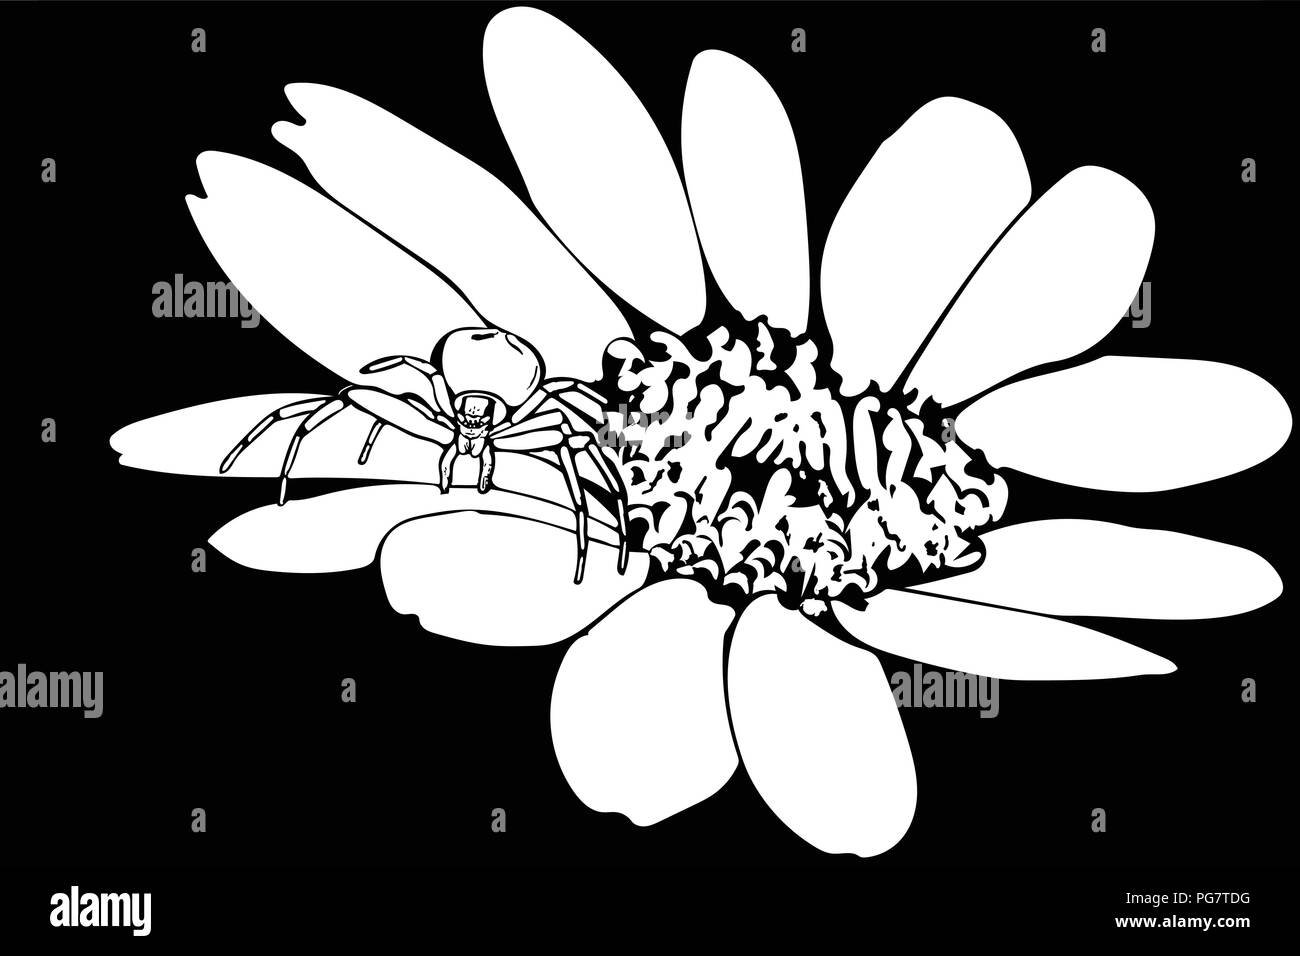 Black and white vector art of a Crab spider standing on flower head. Stock Vector